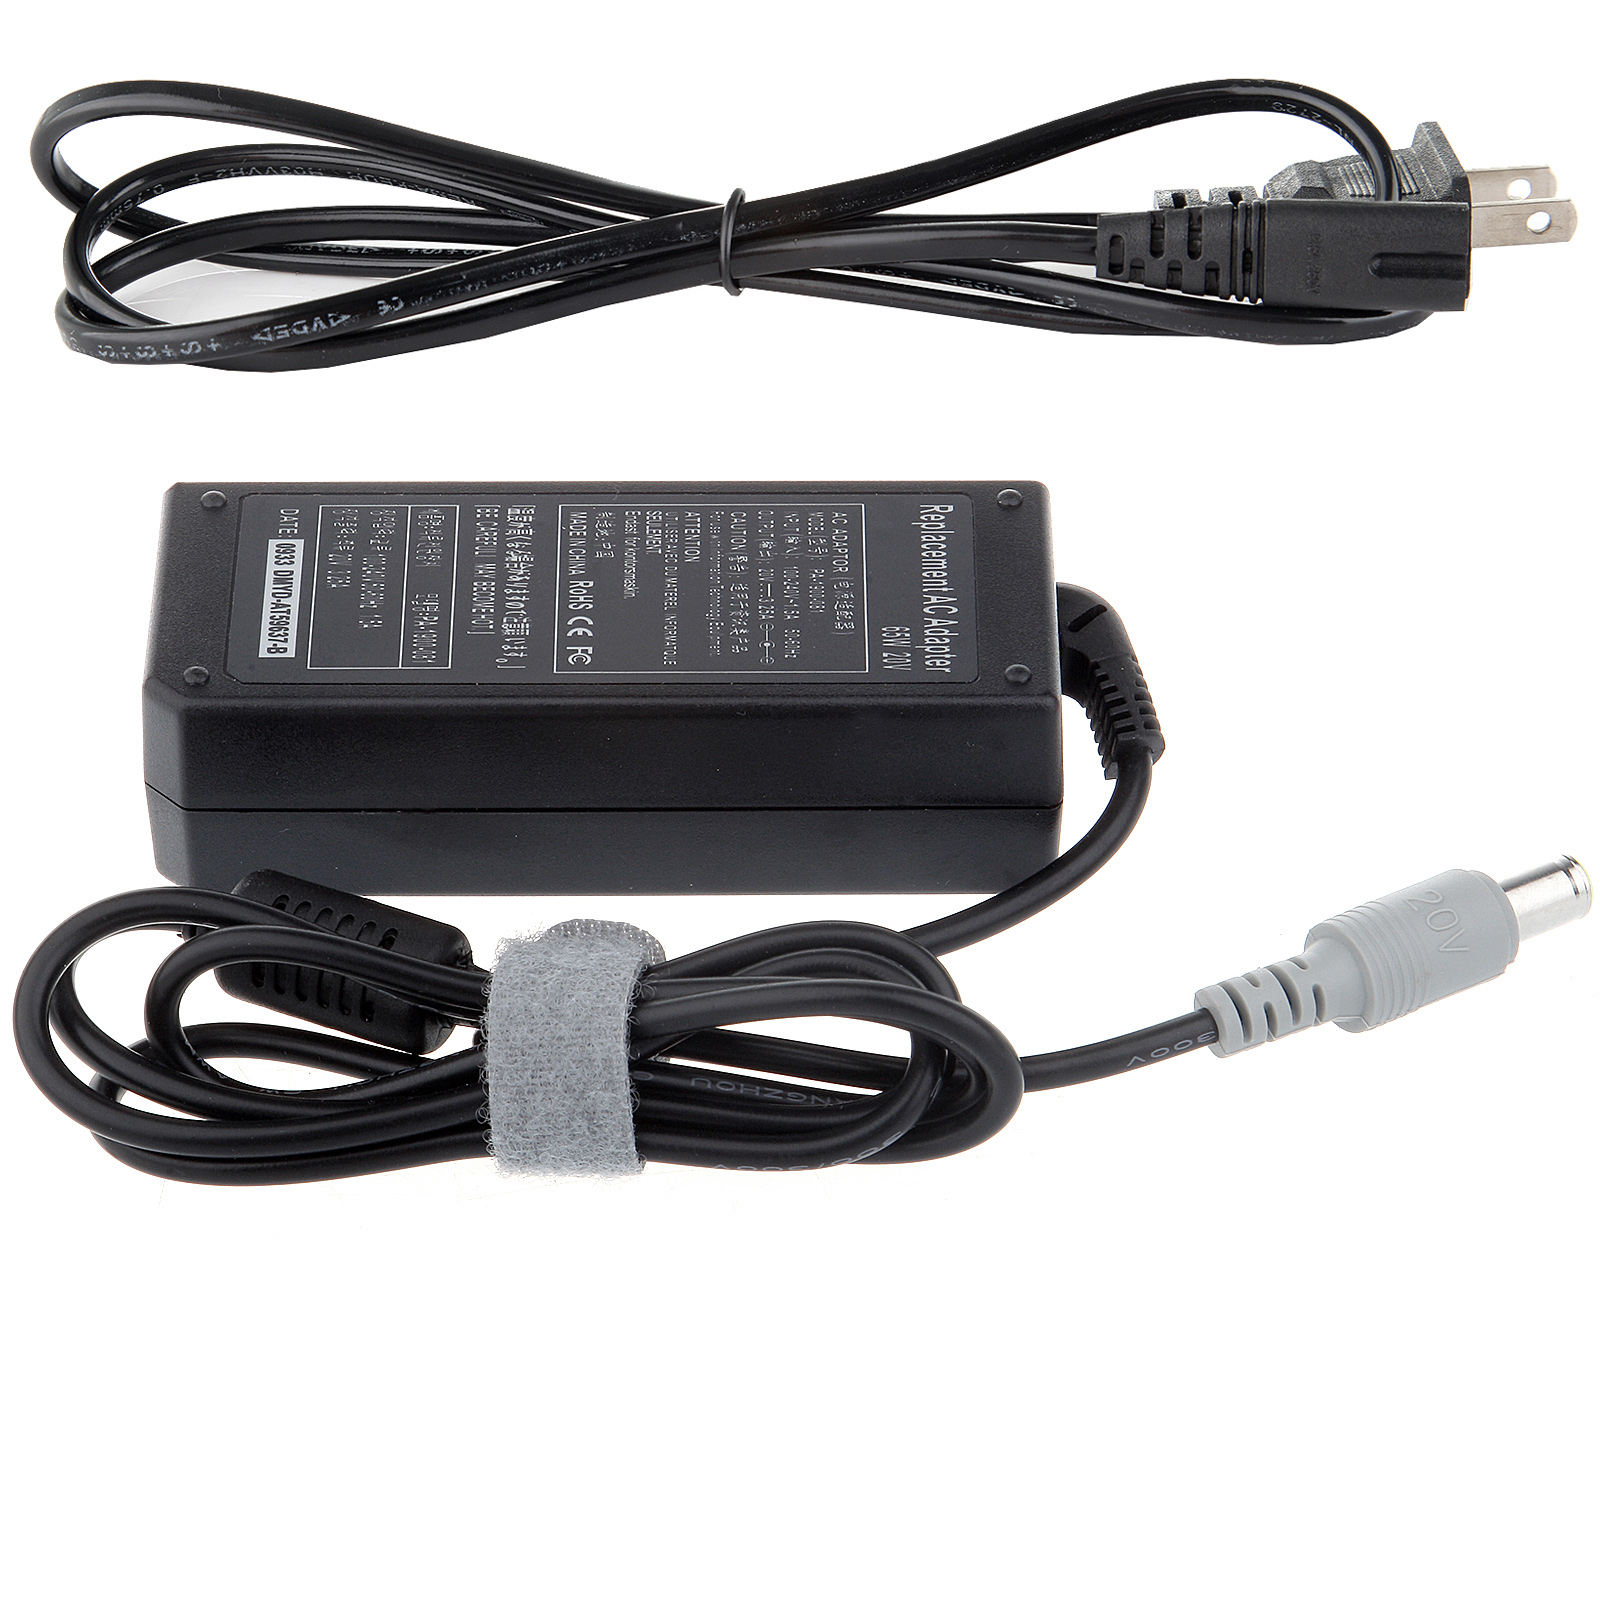 20v 3.25a 65w Ac Laptop Power Charger Adapter For Ibm Lenovo 40y7696 R60 X60 Z60 T60 Z61t R61 Laptop Accessories